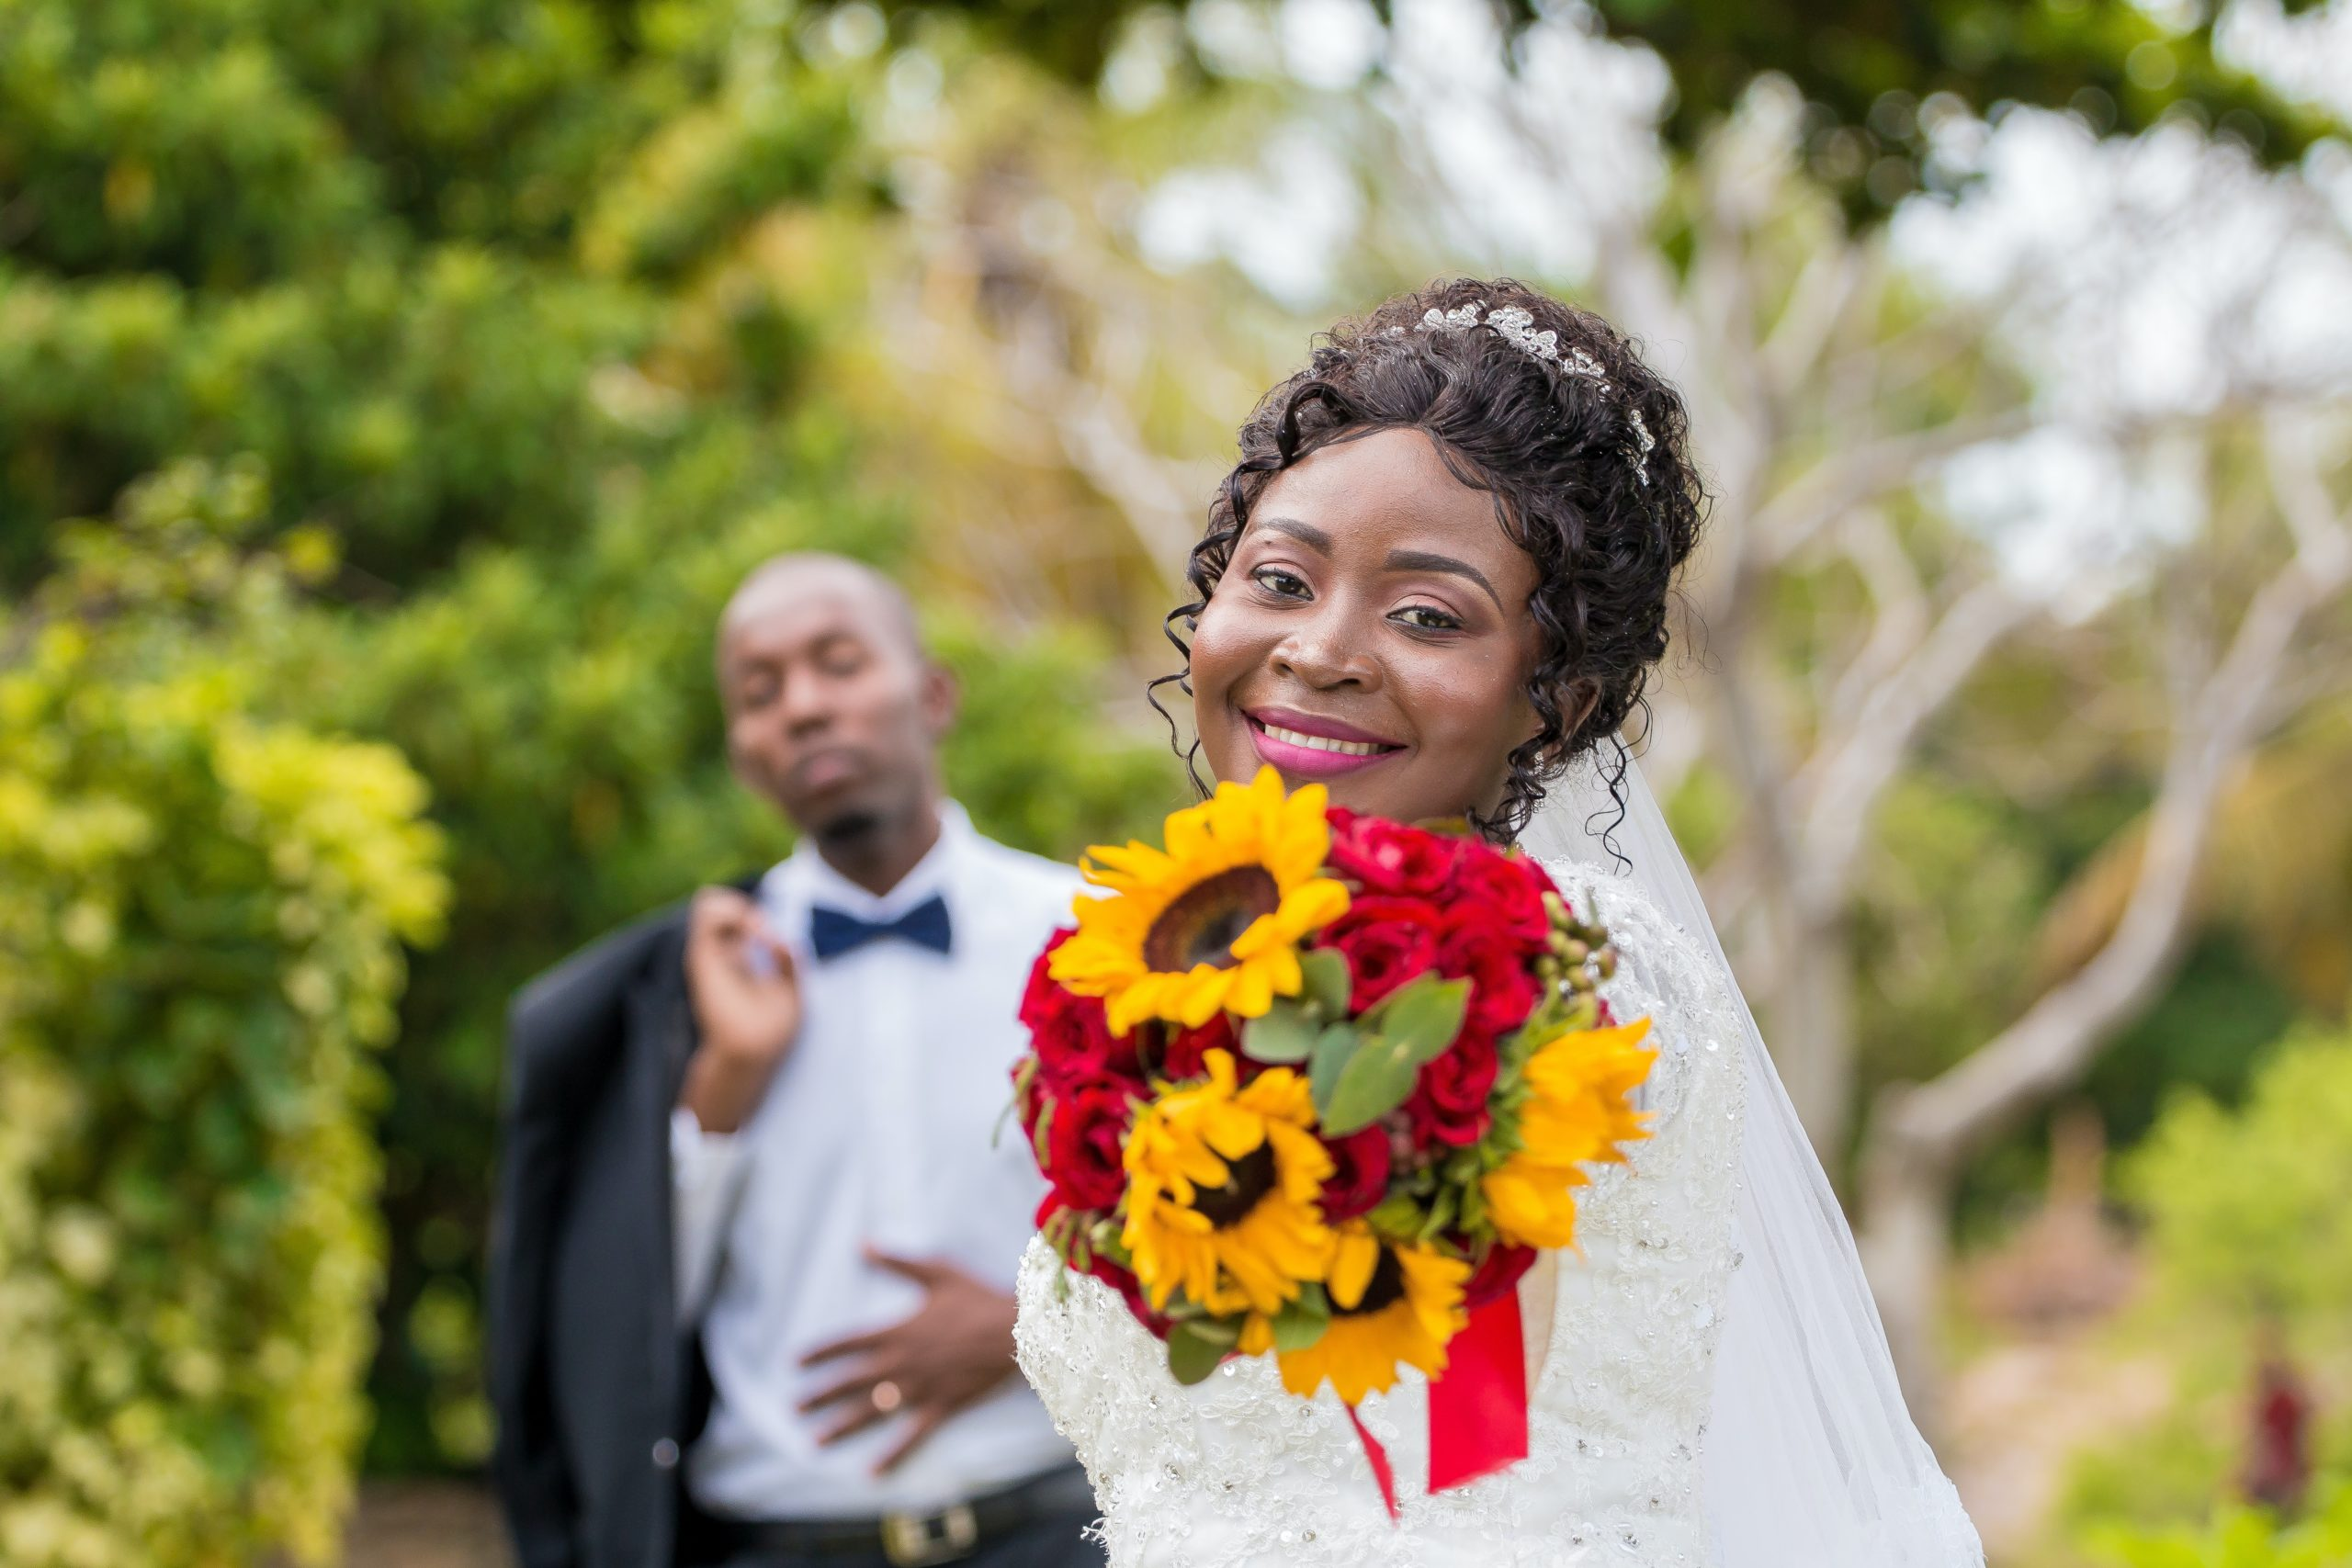 photo-of-woman-holding-bouquet-of-flowers-3657595